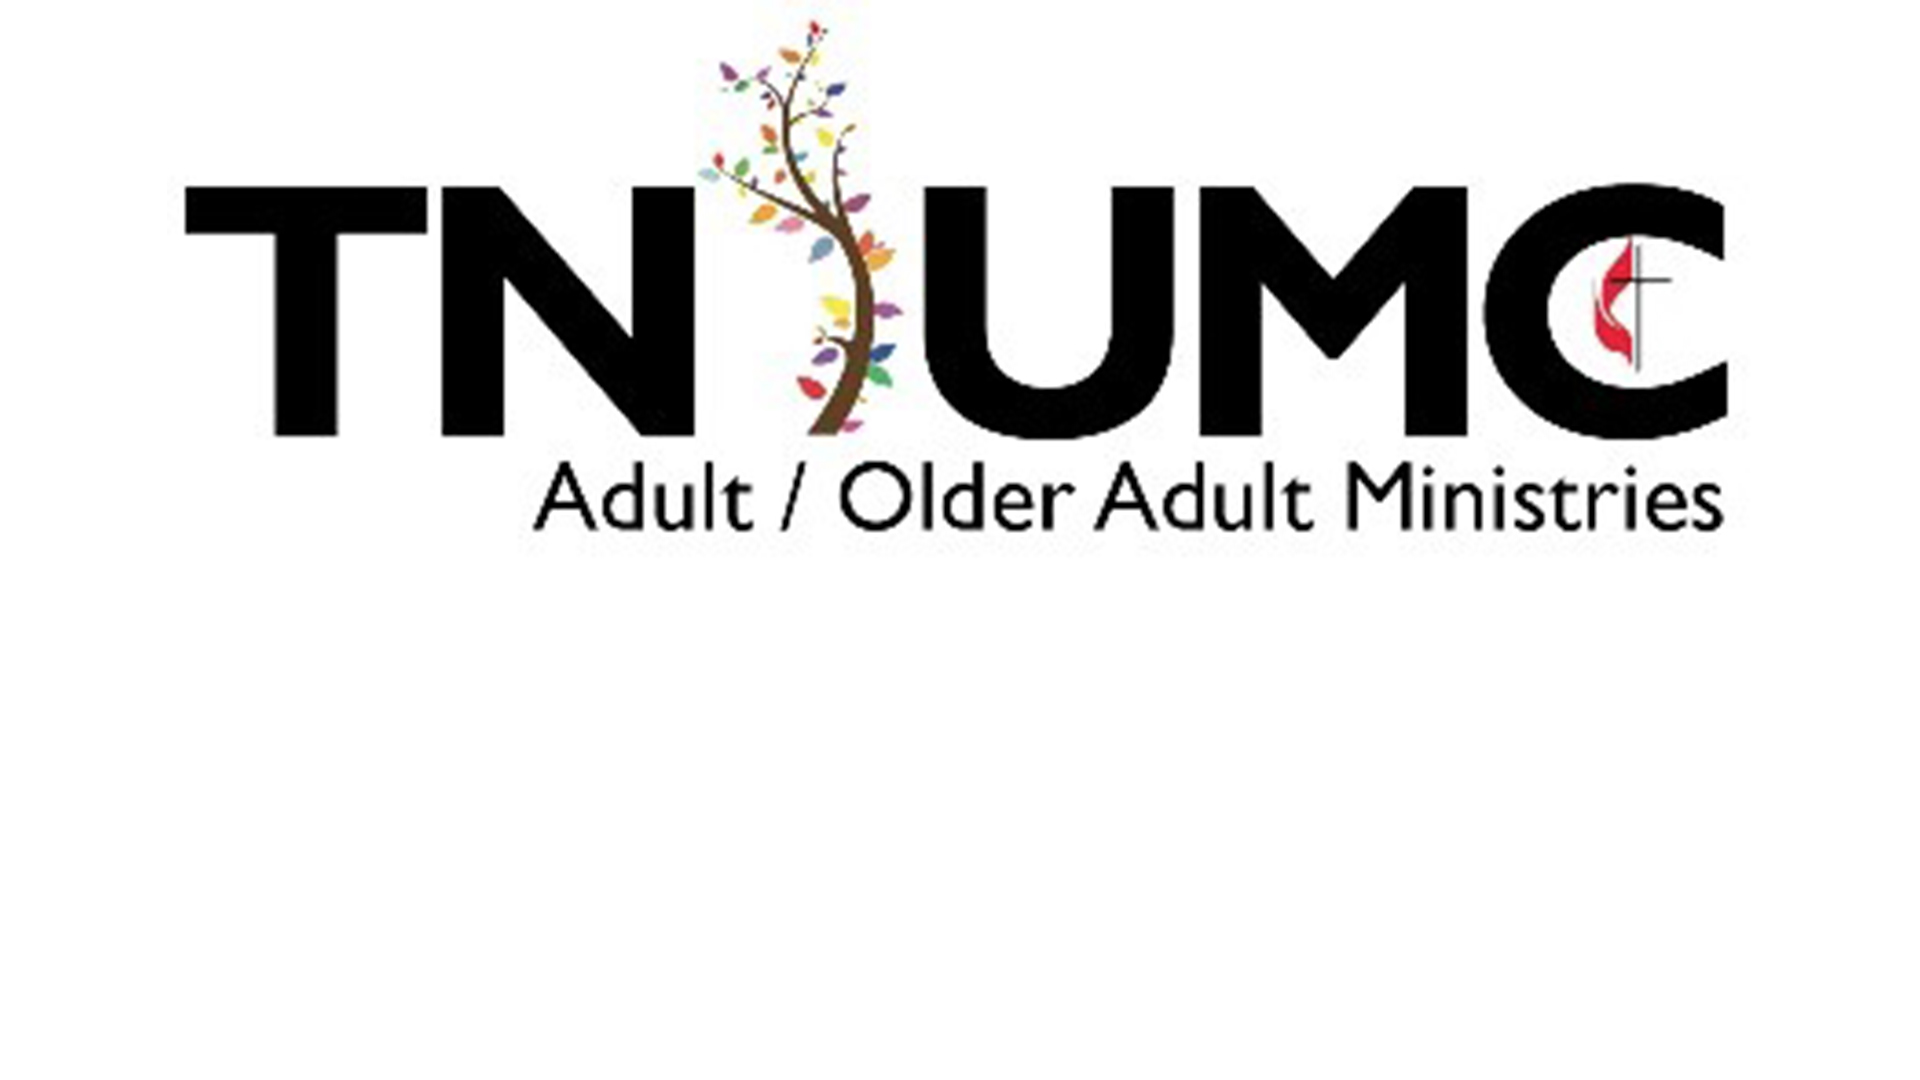 Pity, that Older adult ministry